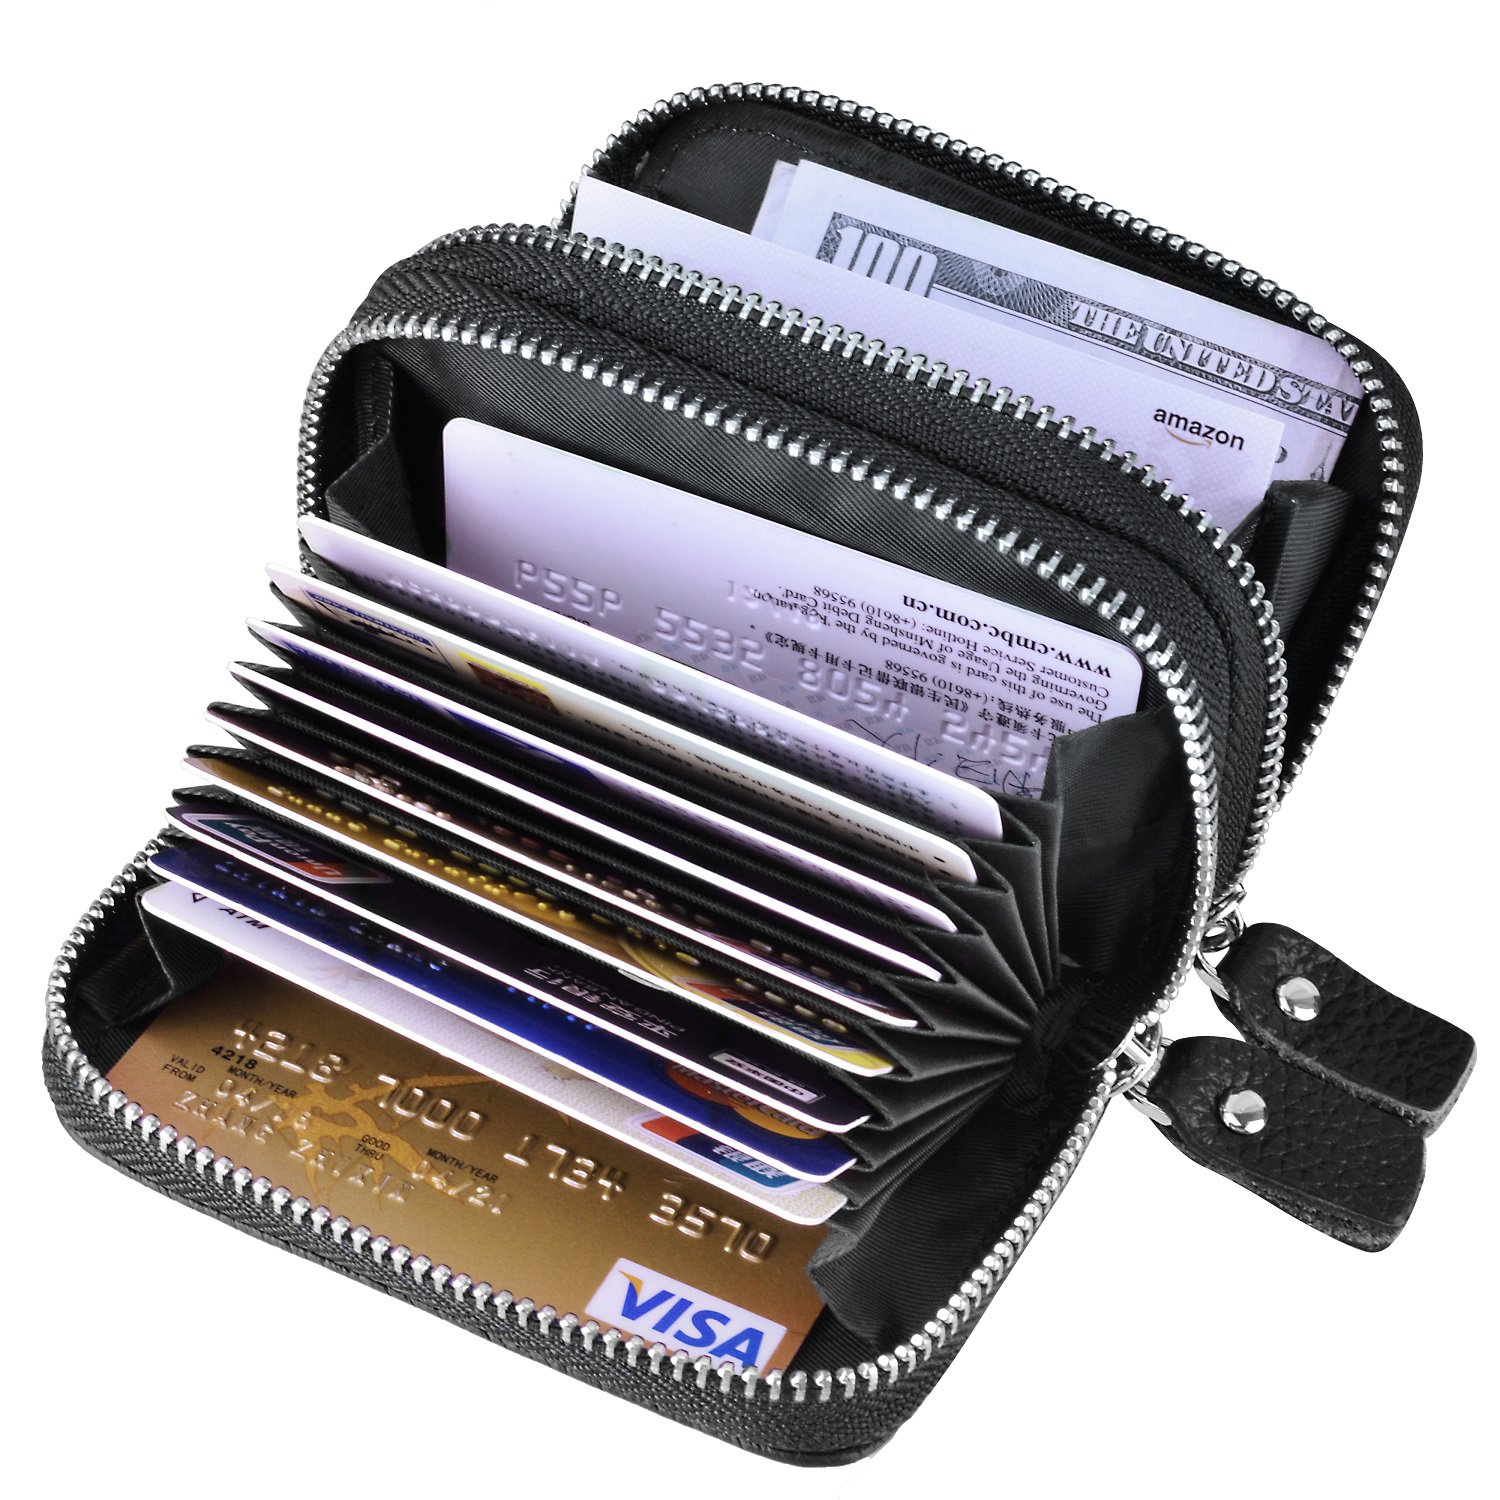 MaxGear RFID Blocking Credit Card Holder Genuine Leather Credit Card Wallets Credit Card Case Coin Credit Card Purse for Women or Men Credit Cards Organizer, Black